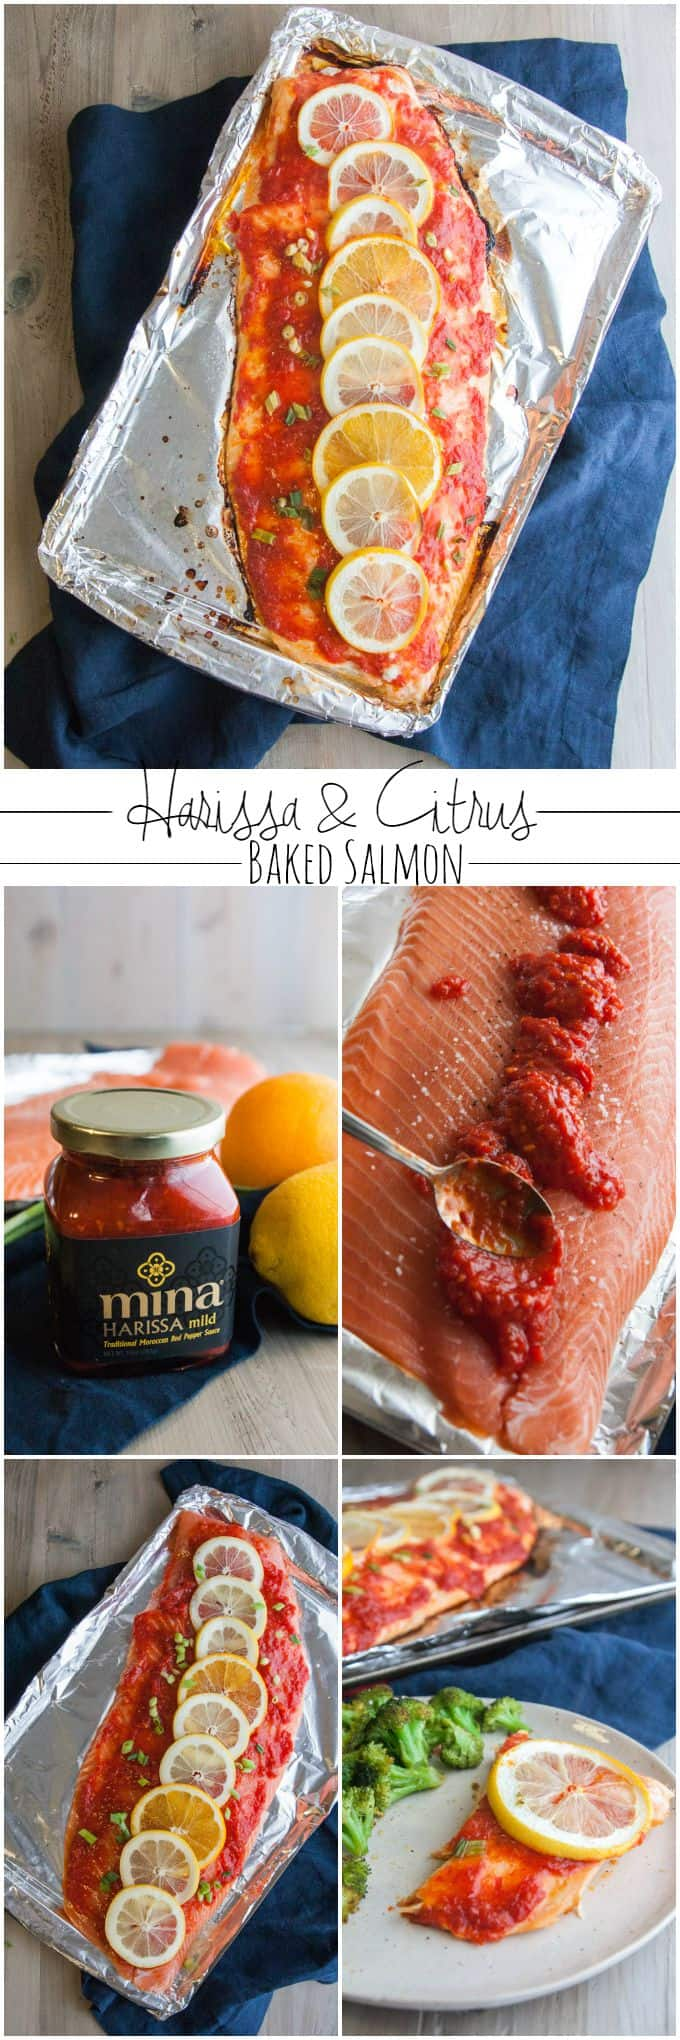 Harissa and citrus baked salmon from @sweetphi